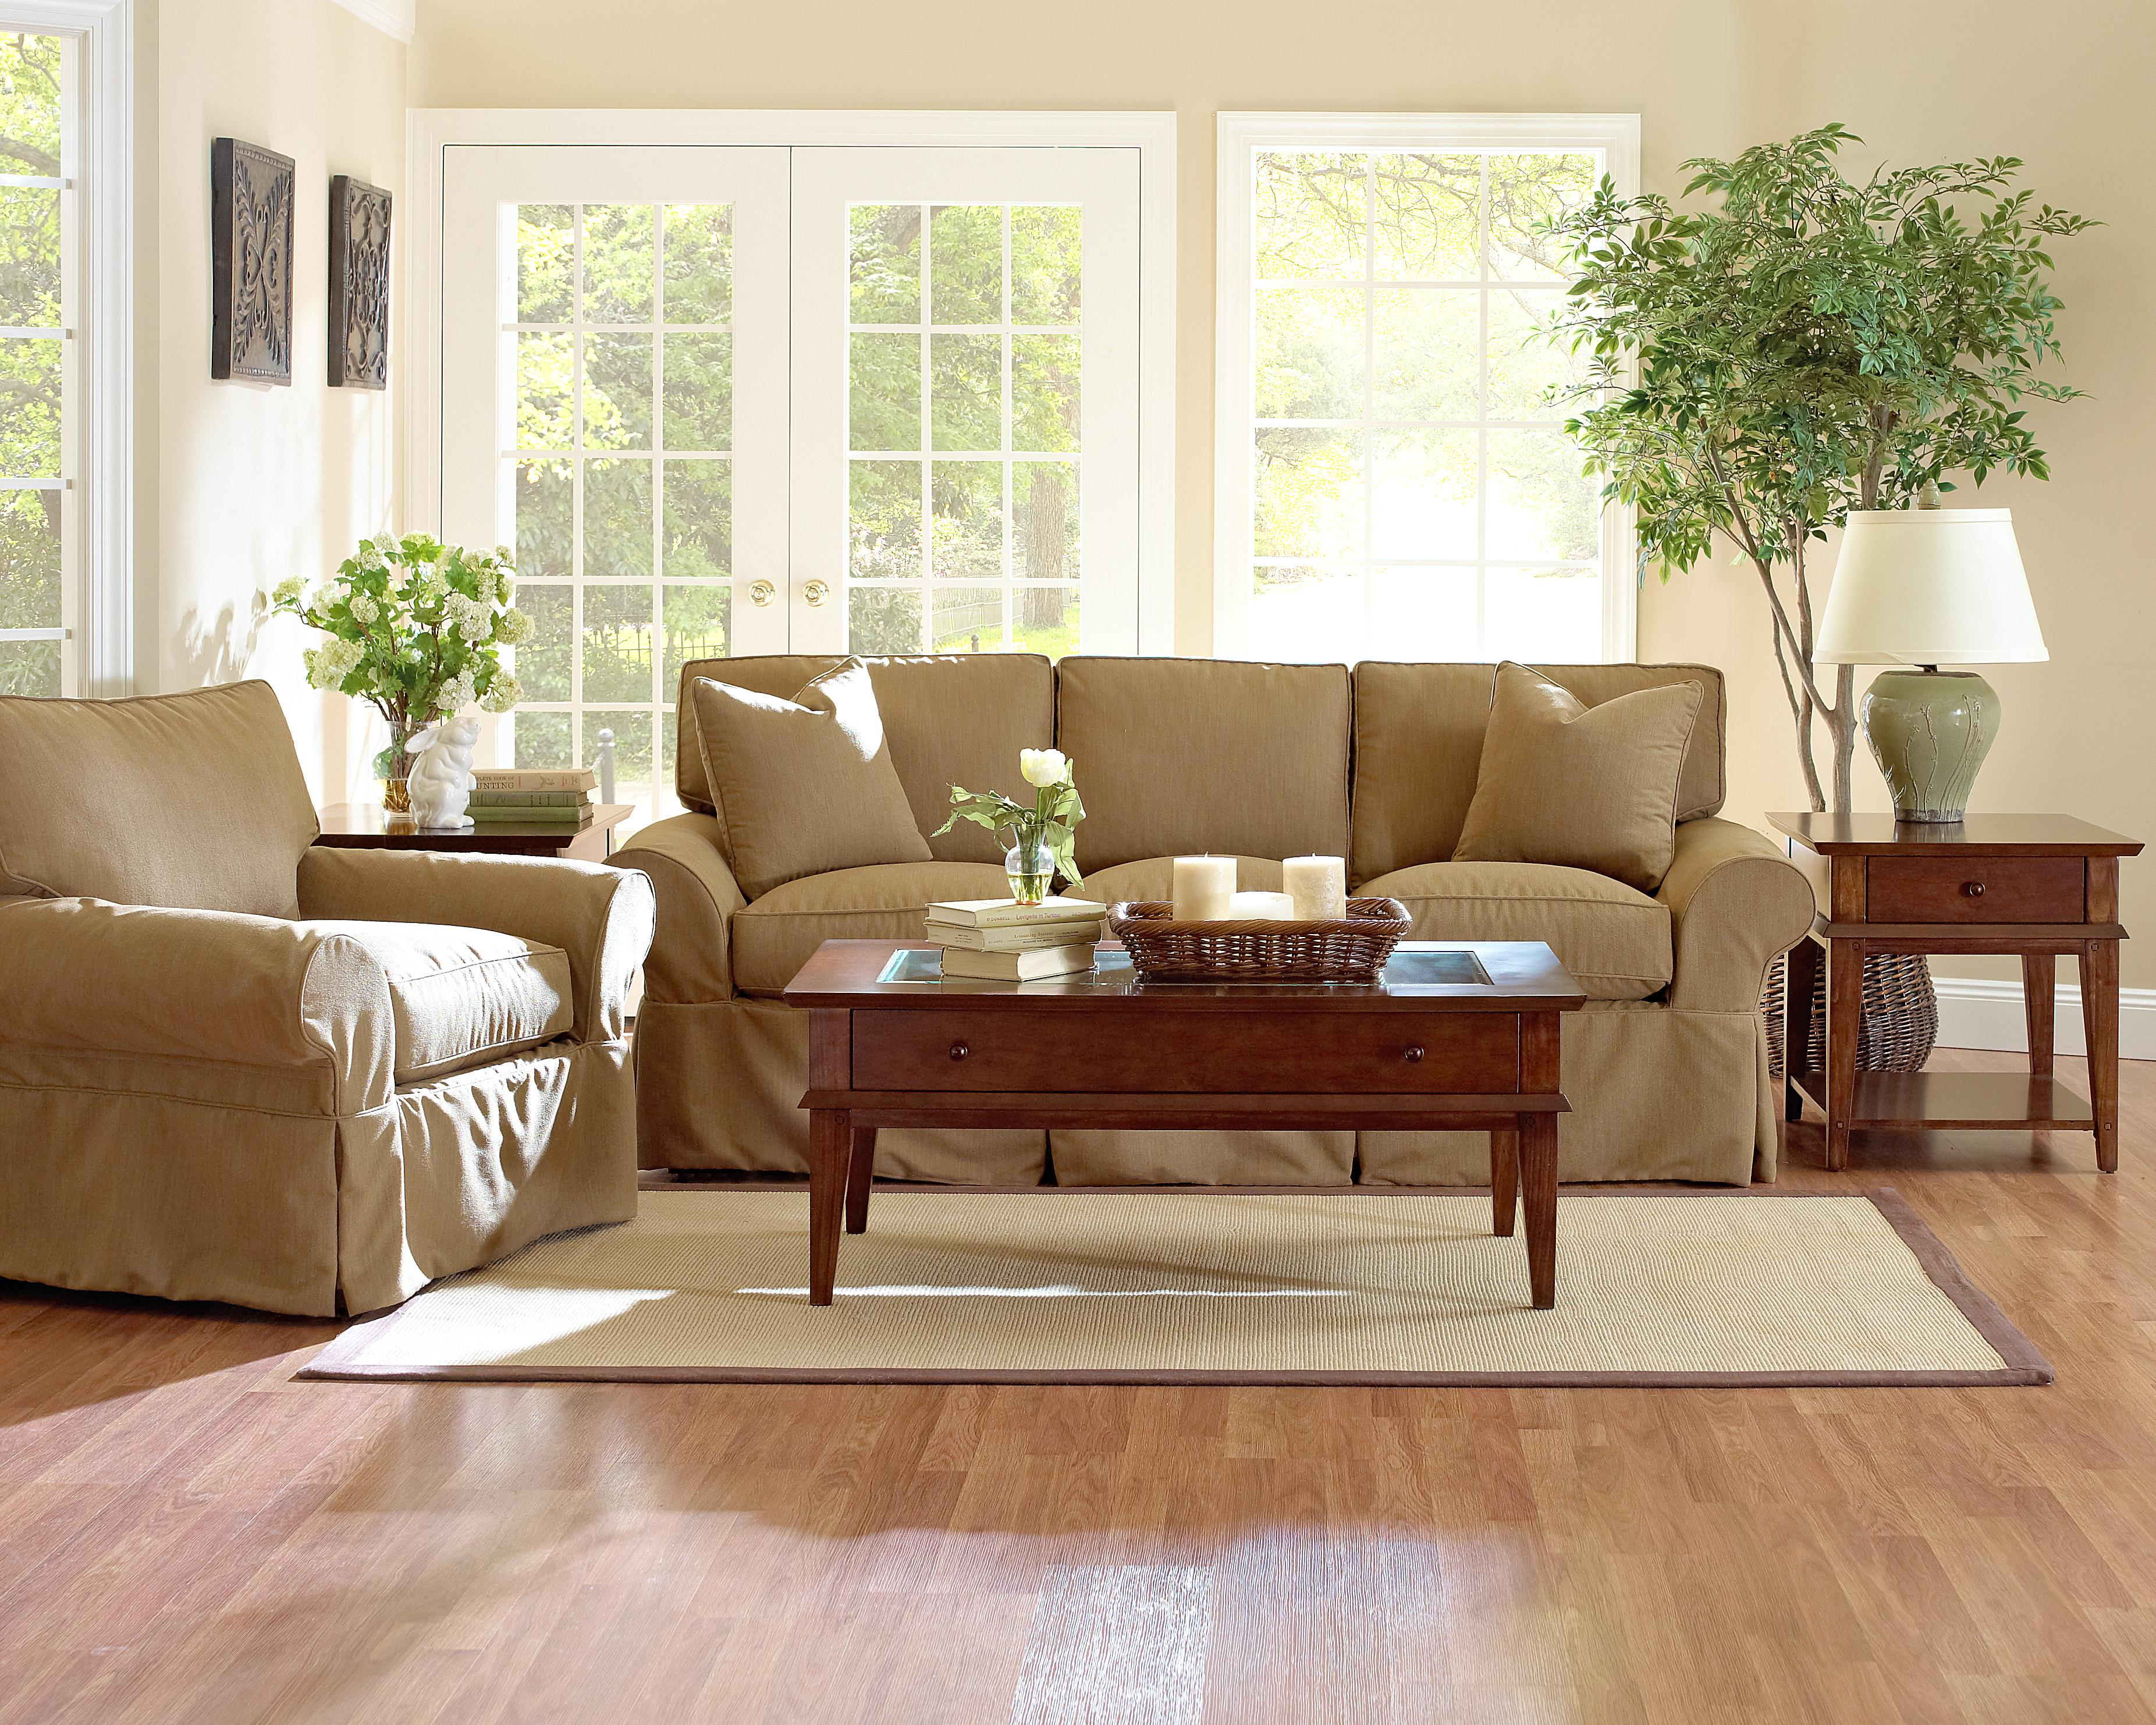 Klaussner Patterns Slipcovered Sofa With Rolled Arms And